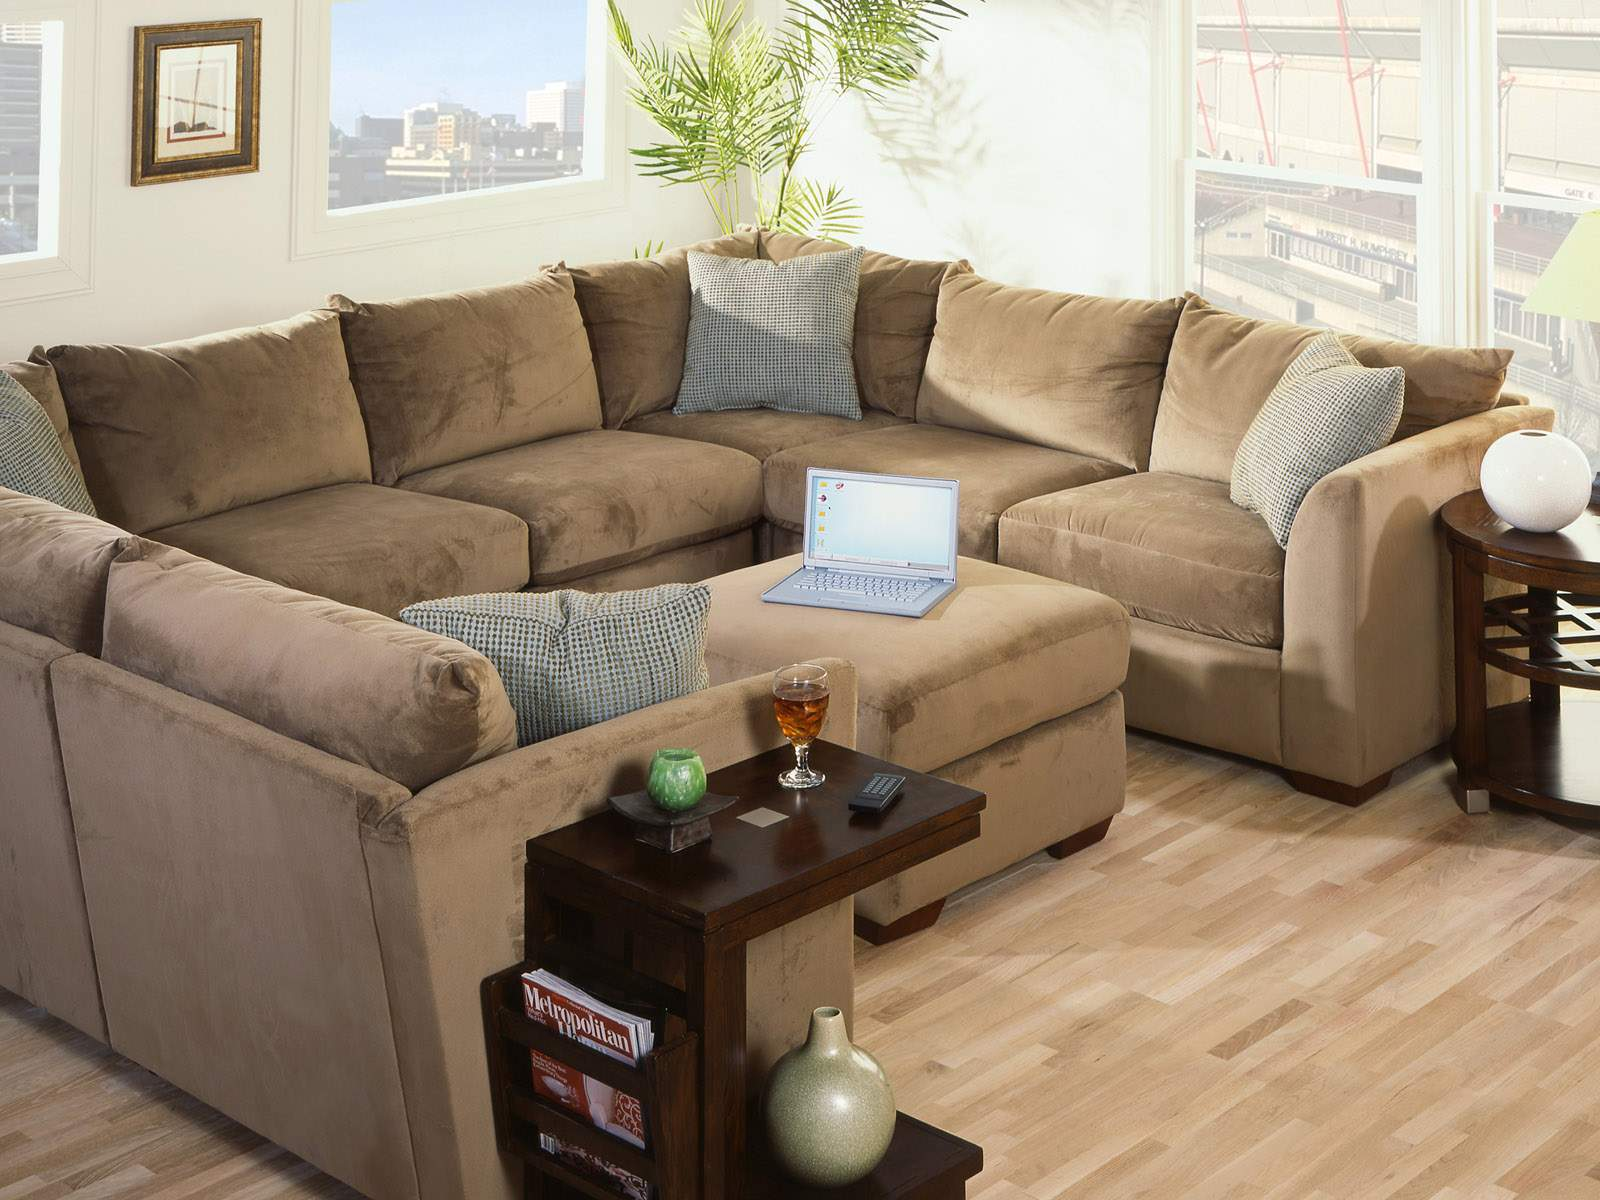 Decorating Living Room With Sectional Sofa: Interior Design Ideas